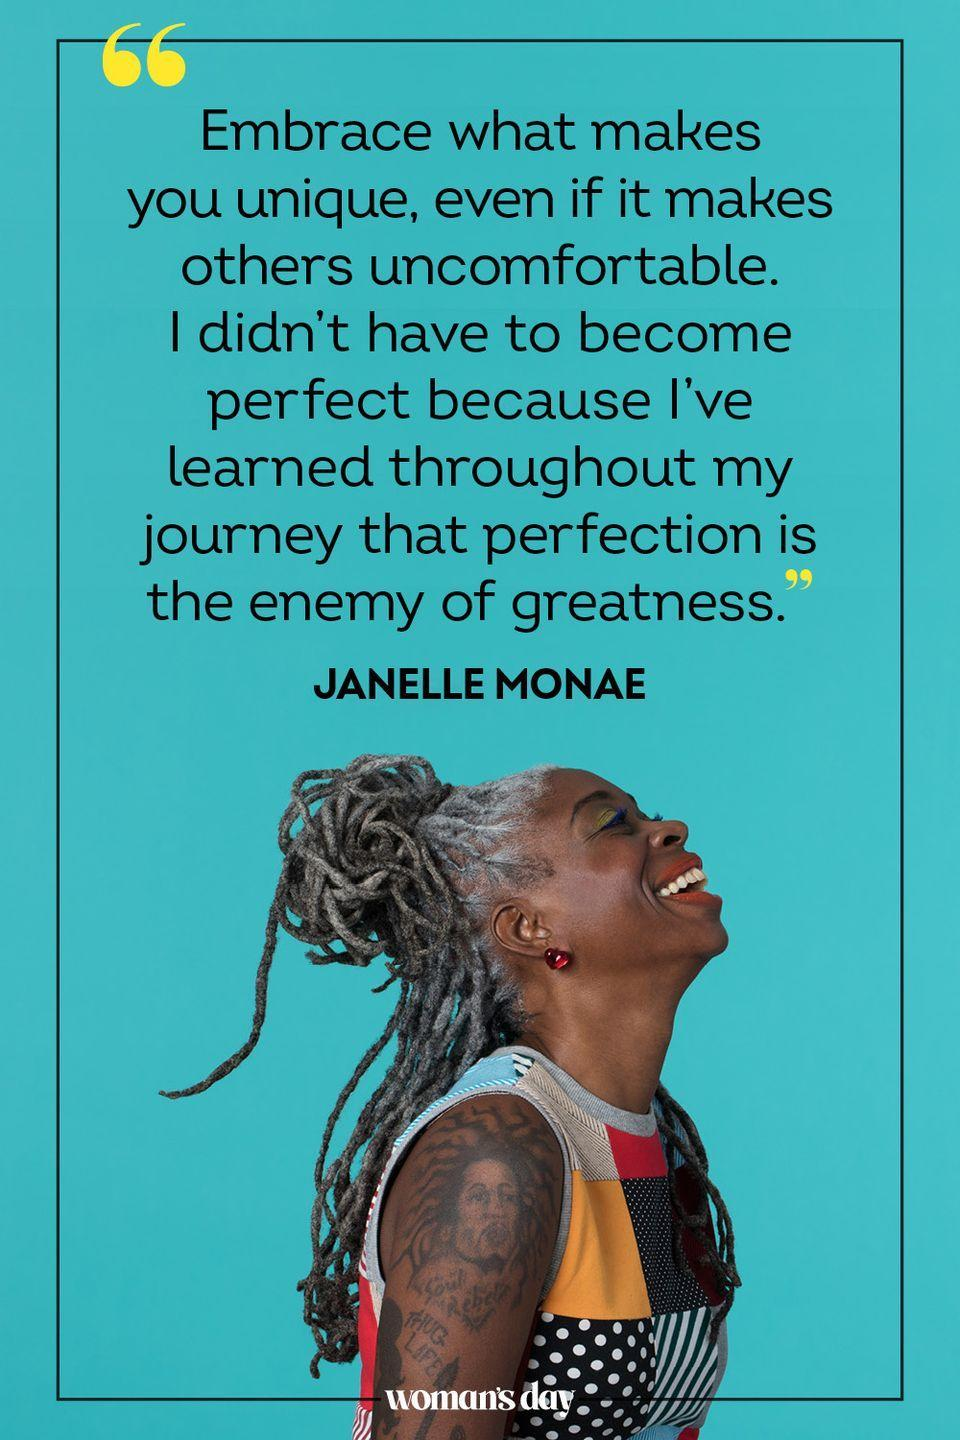 """<p>""""Embrace what makes you unique, even if it makes others uncomfortable. I didn't have to become perfect because I've learned throughout my journey that perfection is the enemy of greatness."""" — Janelle Monae</p>"""